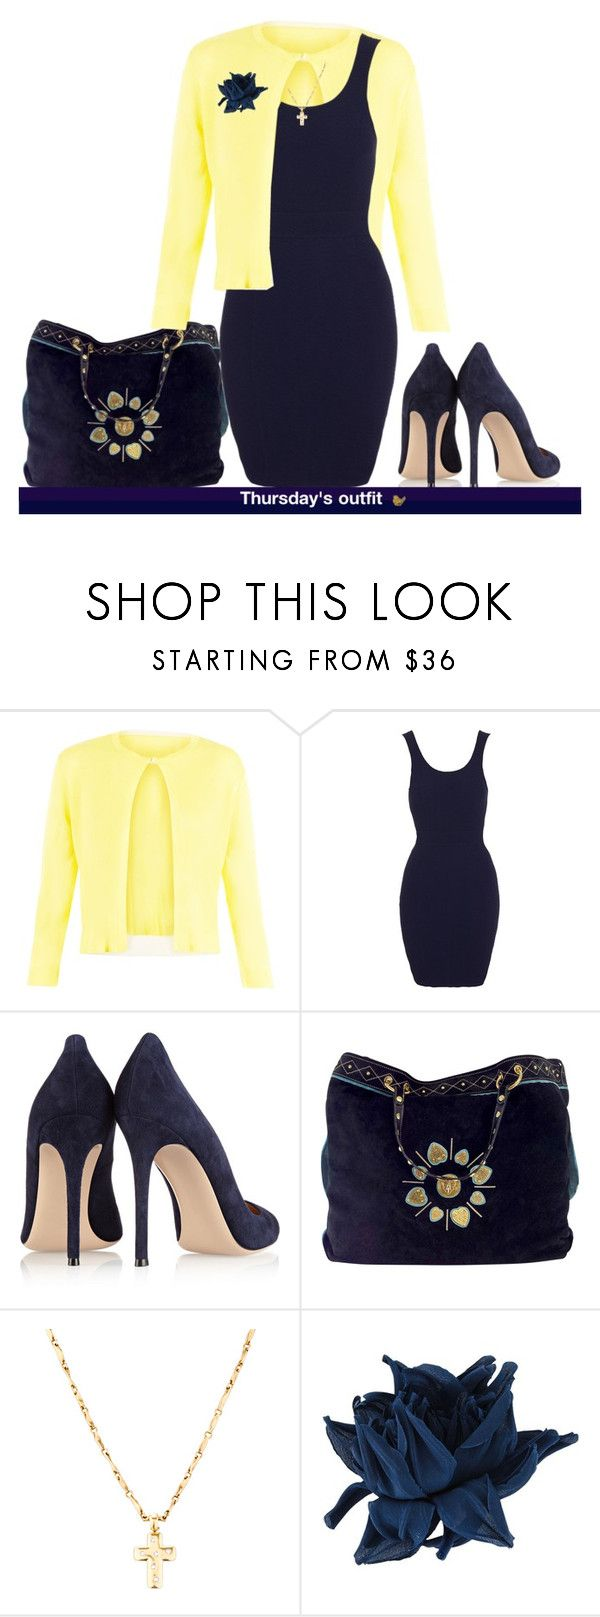 """""""Thursday's outfit."""" by cardigurl ❤ liked on Polyvore featuring Damsel in a Dress, Gianvito Rossi, Gucci, Erika Cavallini Semi-Couture and Judith Leiber"""